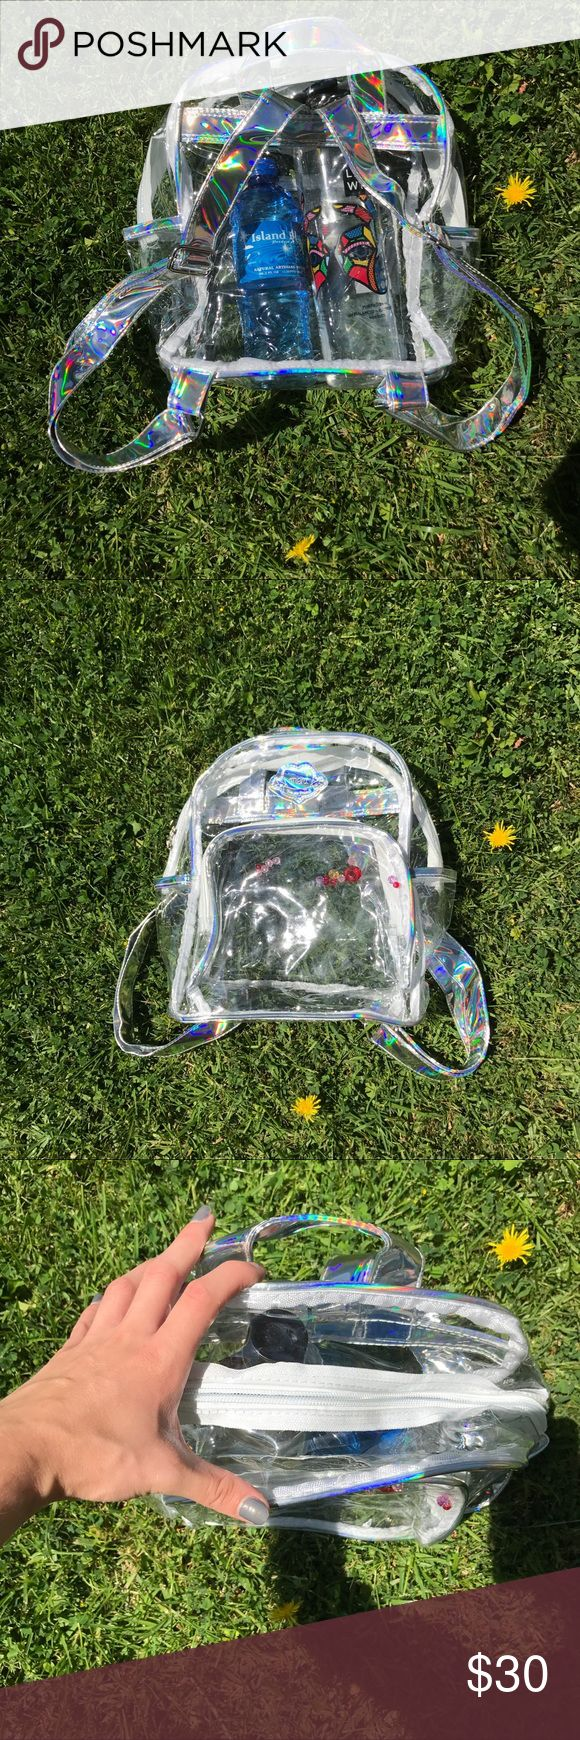 Transparent Holographic Backpack Brand new, in original packaging. Transparent Holographic Backpack. Straps are holographic faux leather. Not unif.  Tags: festival, hologram, rave, ravewear, Coachella, beyond wonderland, ultra, insomniac, dreamstate, dollskill, little black diamond, j valentine, iheartraves, edc UNIF Bags Backpacks